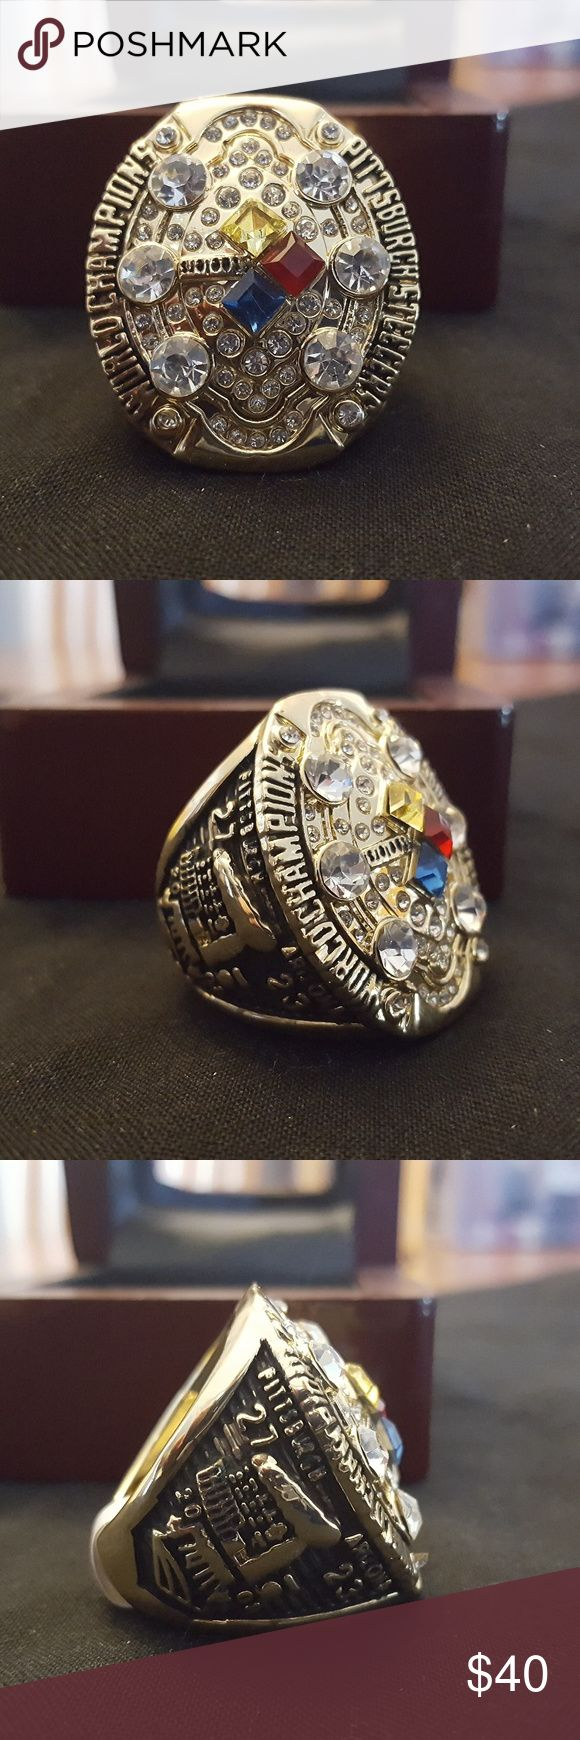 Pittsburgh Steelers 2008 Fan Edition Champ Ring 🏆🏈🏆 New never worn. Sizes 10. Show the world your team pride and with this fan edition Super Bowl Championship Ring . This gorgeous ring is 18k gold plated or silver and inlayed with exquisite cubic zirconias. It will look great on your finger, at the game, while watching the game on tv, or around town. This is the closest thing to a real championship ring set that most of us will ever get to. A great gift for a Steelers' fan🏈🏆🏈…